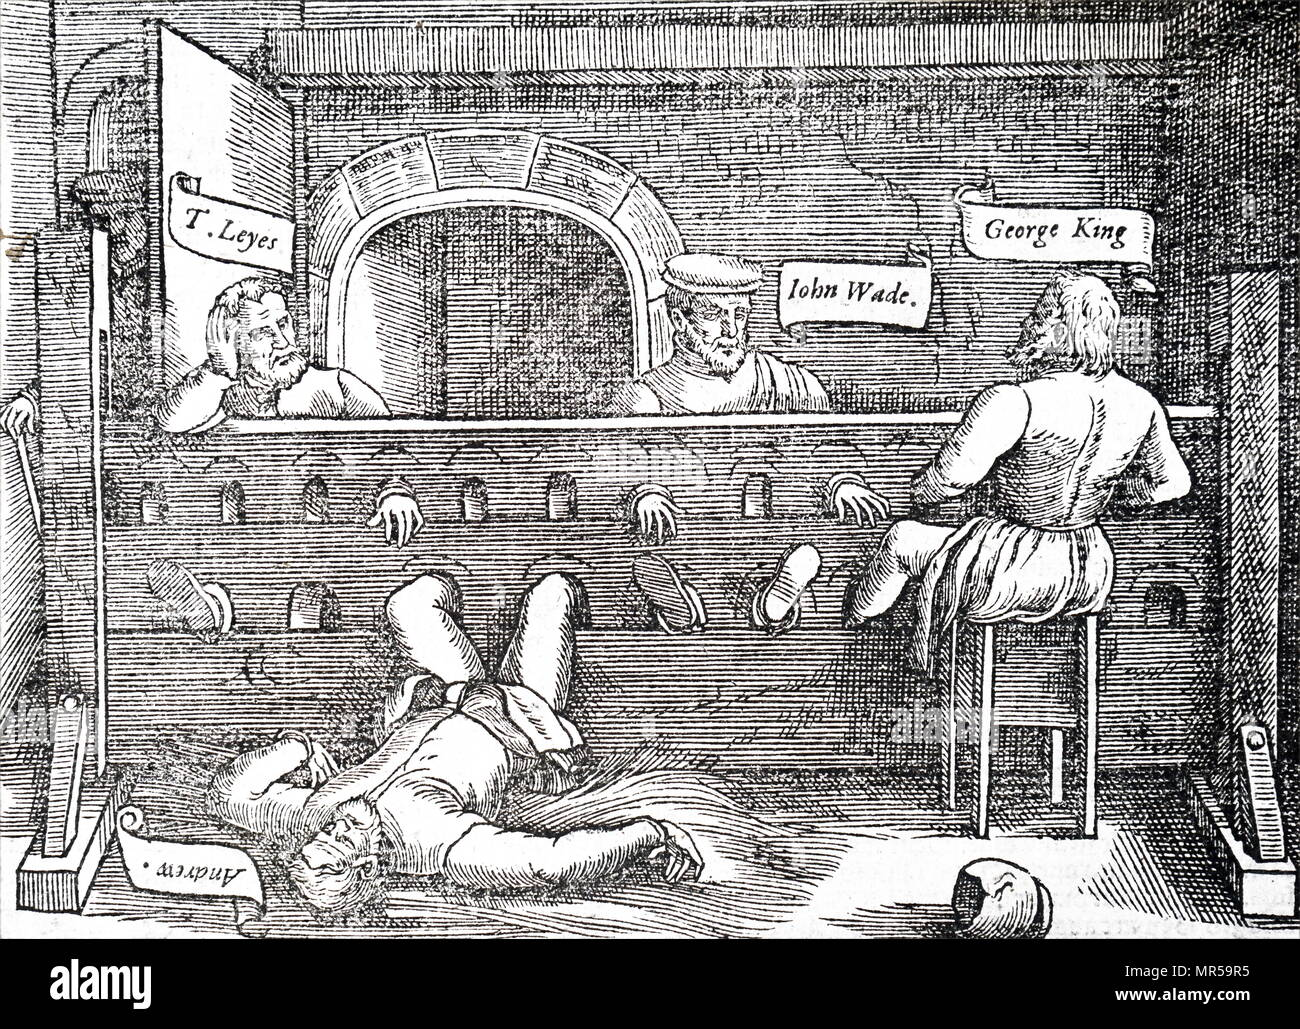 Woodblock engraving depicting Lollards prisoners confined in the stocks within Lollards Tower, Lambeth, which took it's name from them. The Lollards were a reformist Christian sect led by John Wycliffe. Pictured is Thomas Leyes, John Wade, George King and Andrew. Dated 16th century - Stock Image